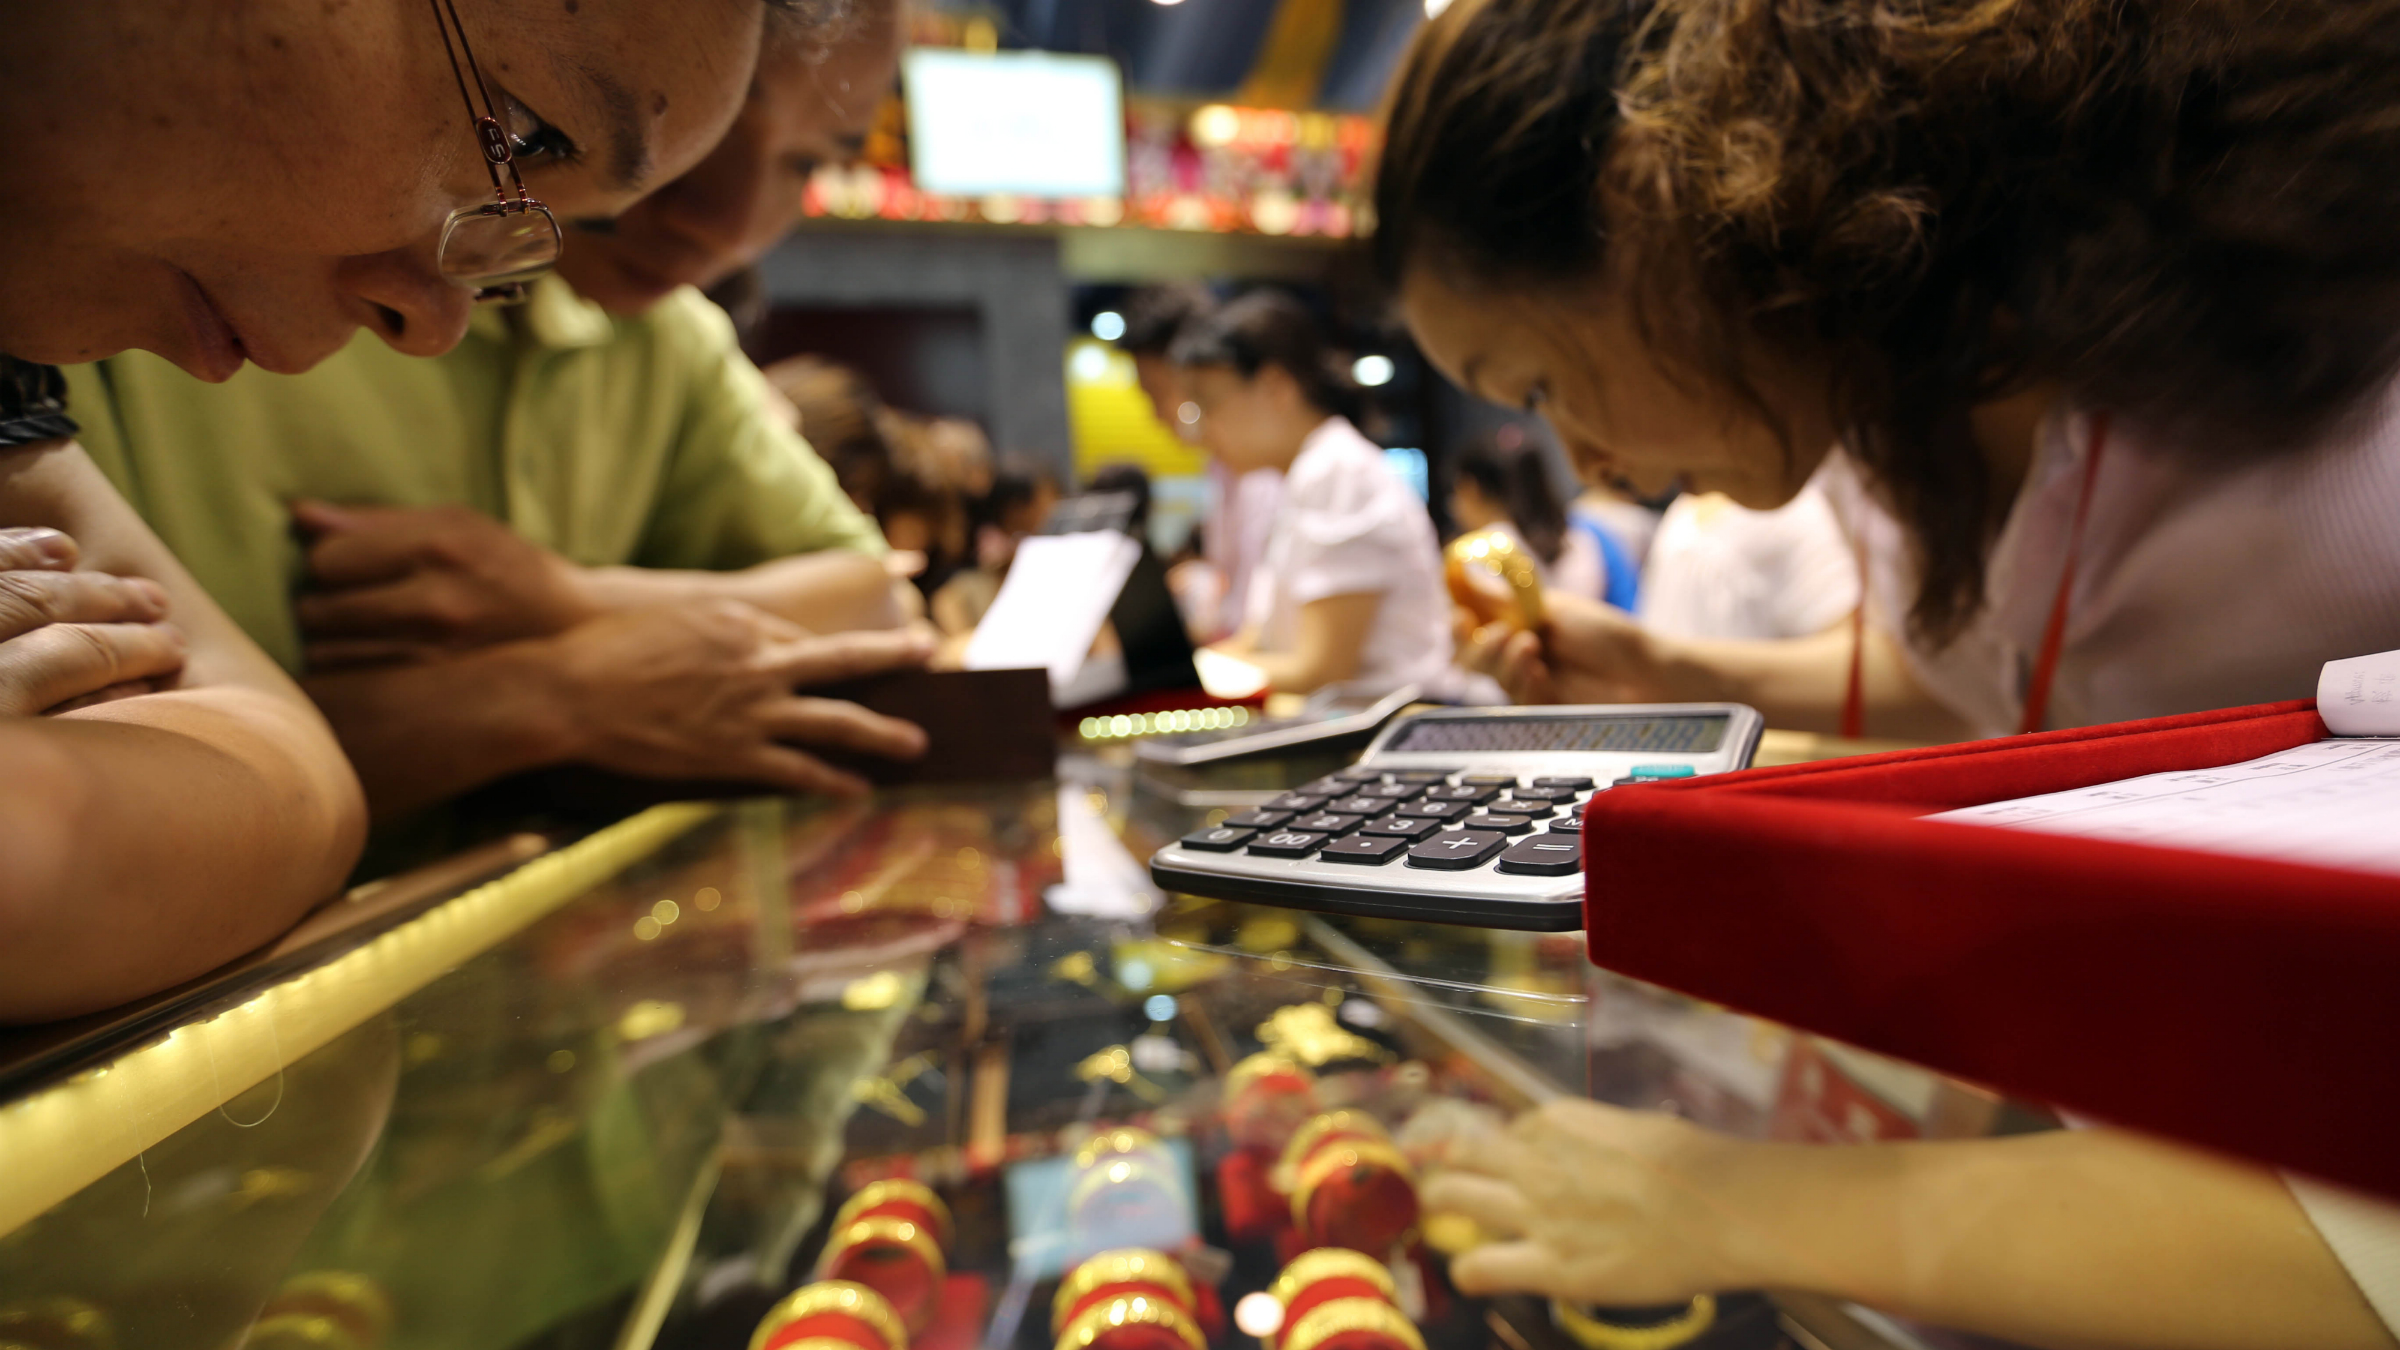 Chinese customers buy gold ornaments at a stand during a gold fair in Guangzhou, south Chinas Guangdong Province, 23 June 2013. Gold fell below $1,200 on Friday (28 June 2013) to its lowest since August 2010 before recovering, and is on track to post its worst quarter since at least 1968 on persistent worries over the U.S. Federal Reserves plan to wind down its monetary stimulus. Bullion has taken a beating since the beginning of last week, losing as much as 15 percent, or about $200 an ounce, after Fed Chairman Ben Bernanke laid out a strategy to roll back the banks $85 billion monthly bond purchases on the back of a recovering economy. The lower prices have failed to boost physical demand in Asia, traditionally the biggest buyer of gold, and investors have continued to flee exchange-traded gold funds. Prices initially failed to find support even after markets in China, the worlds second-biggest gold consumer, opened but saw some gains after some bargain-hunters emerged.(Imaginechina via AP Images